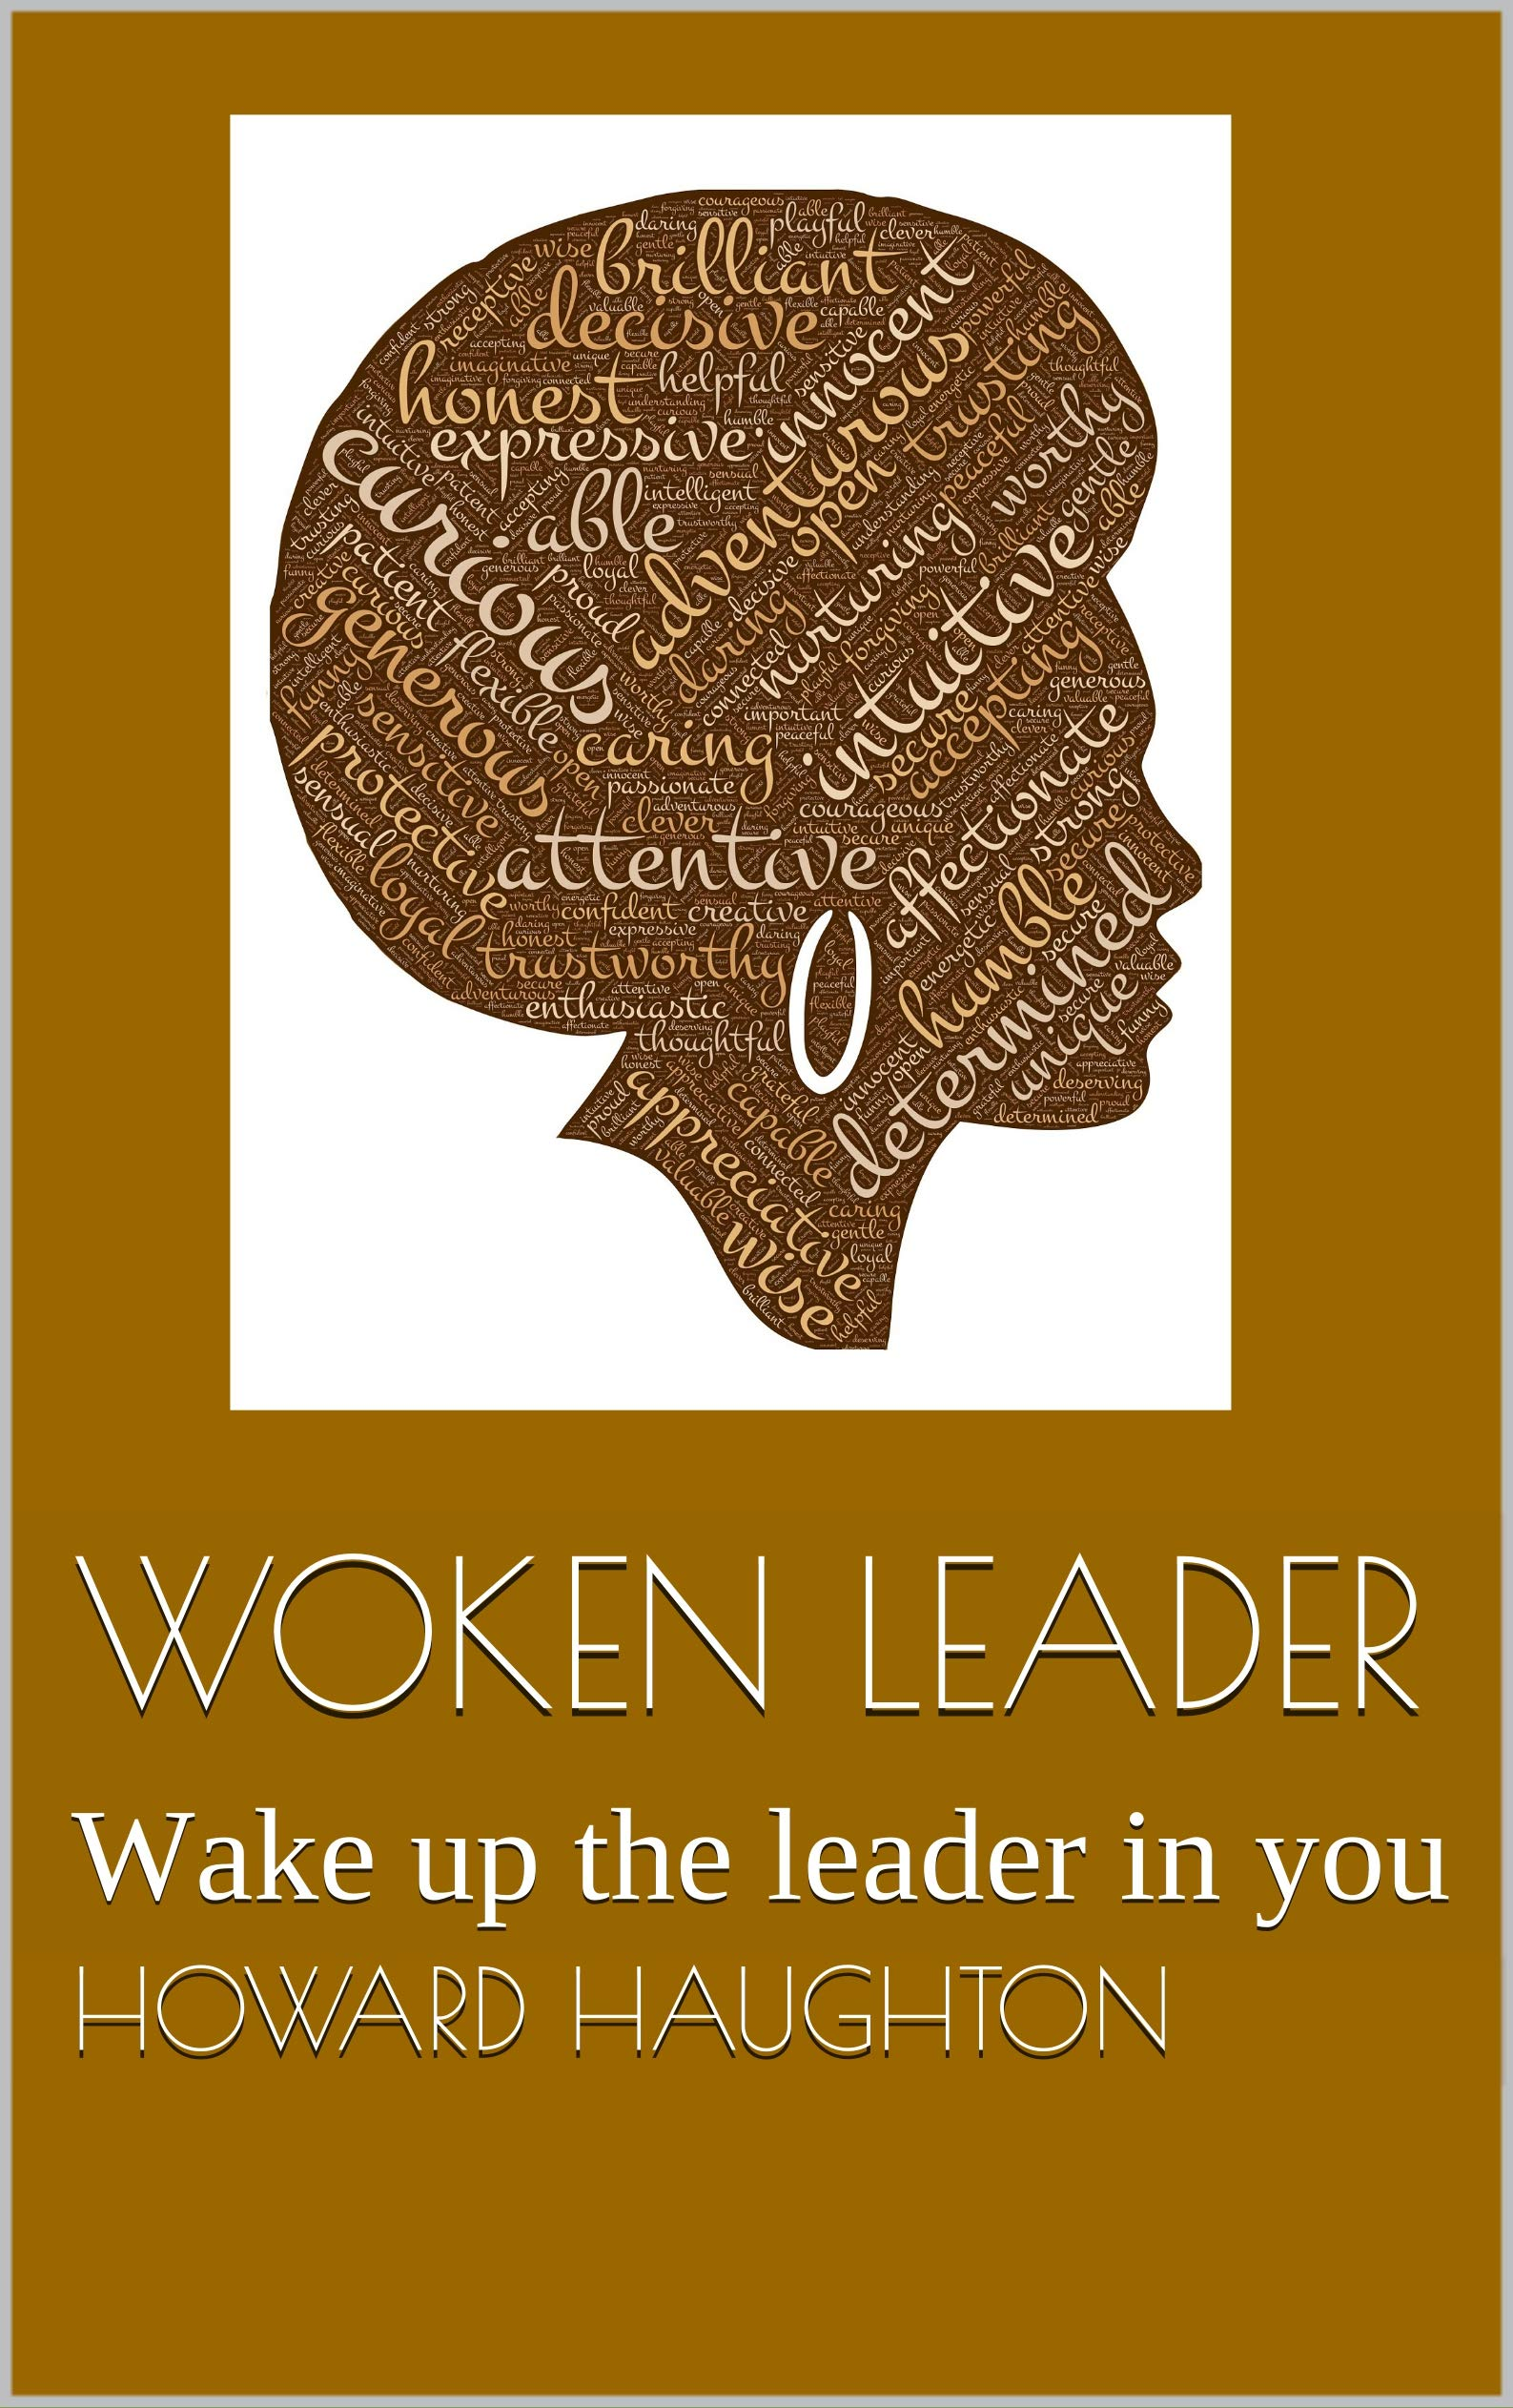 Woken Leader: Wake up the leader in you